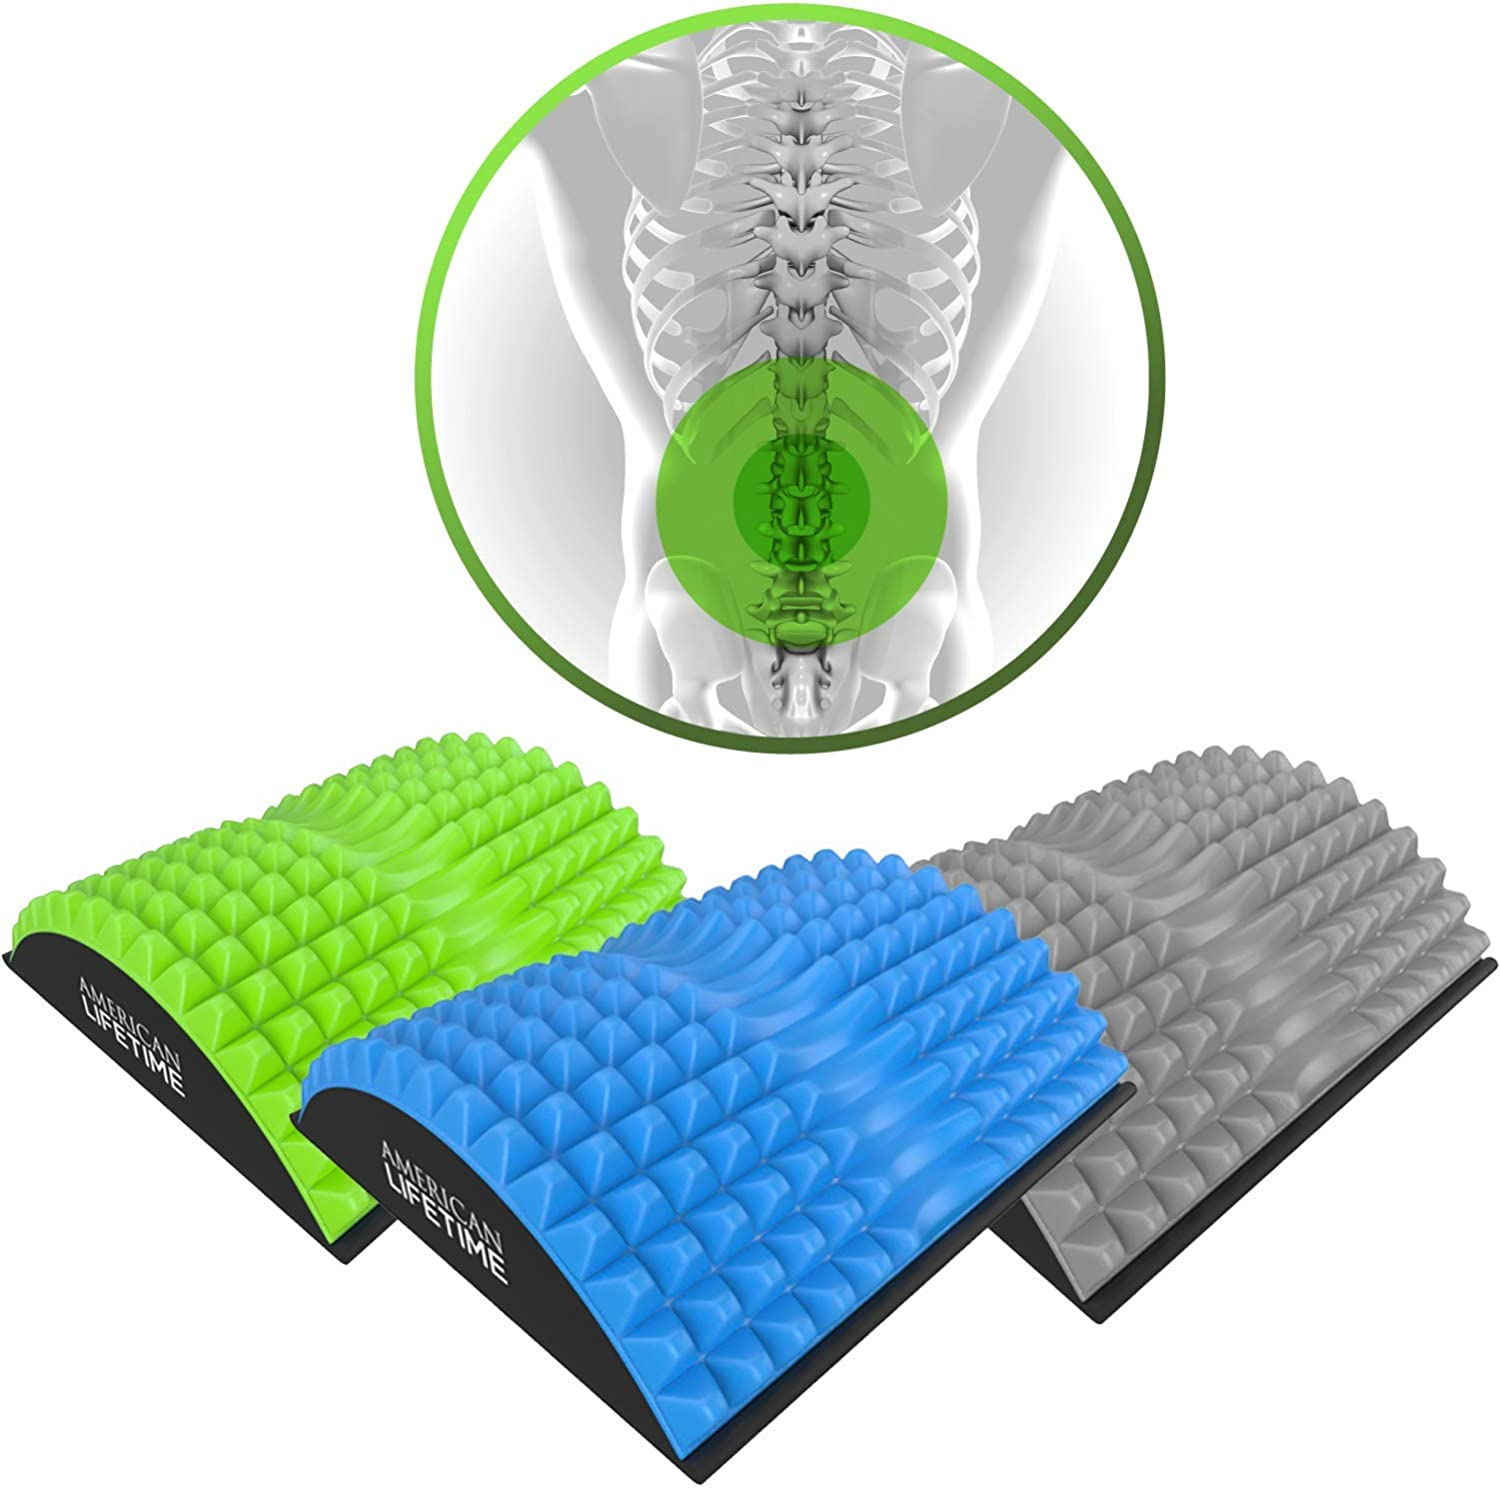 American Lifetime Lower Back Stretcher – Massage for Chronic Lumbar Pain Relief Treatment – Helps with Spinal Stenosis Sciatica Herniated Disc and Neck Muscle Pain – 1 Year Warranty – Blue